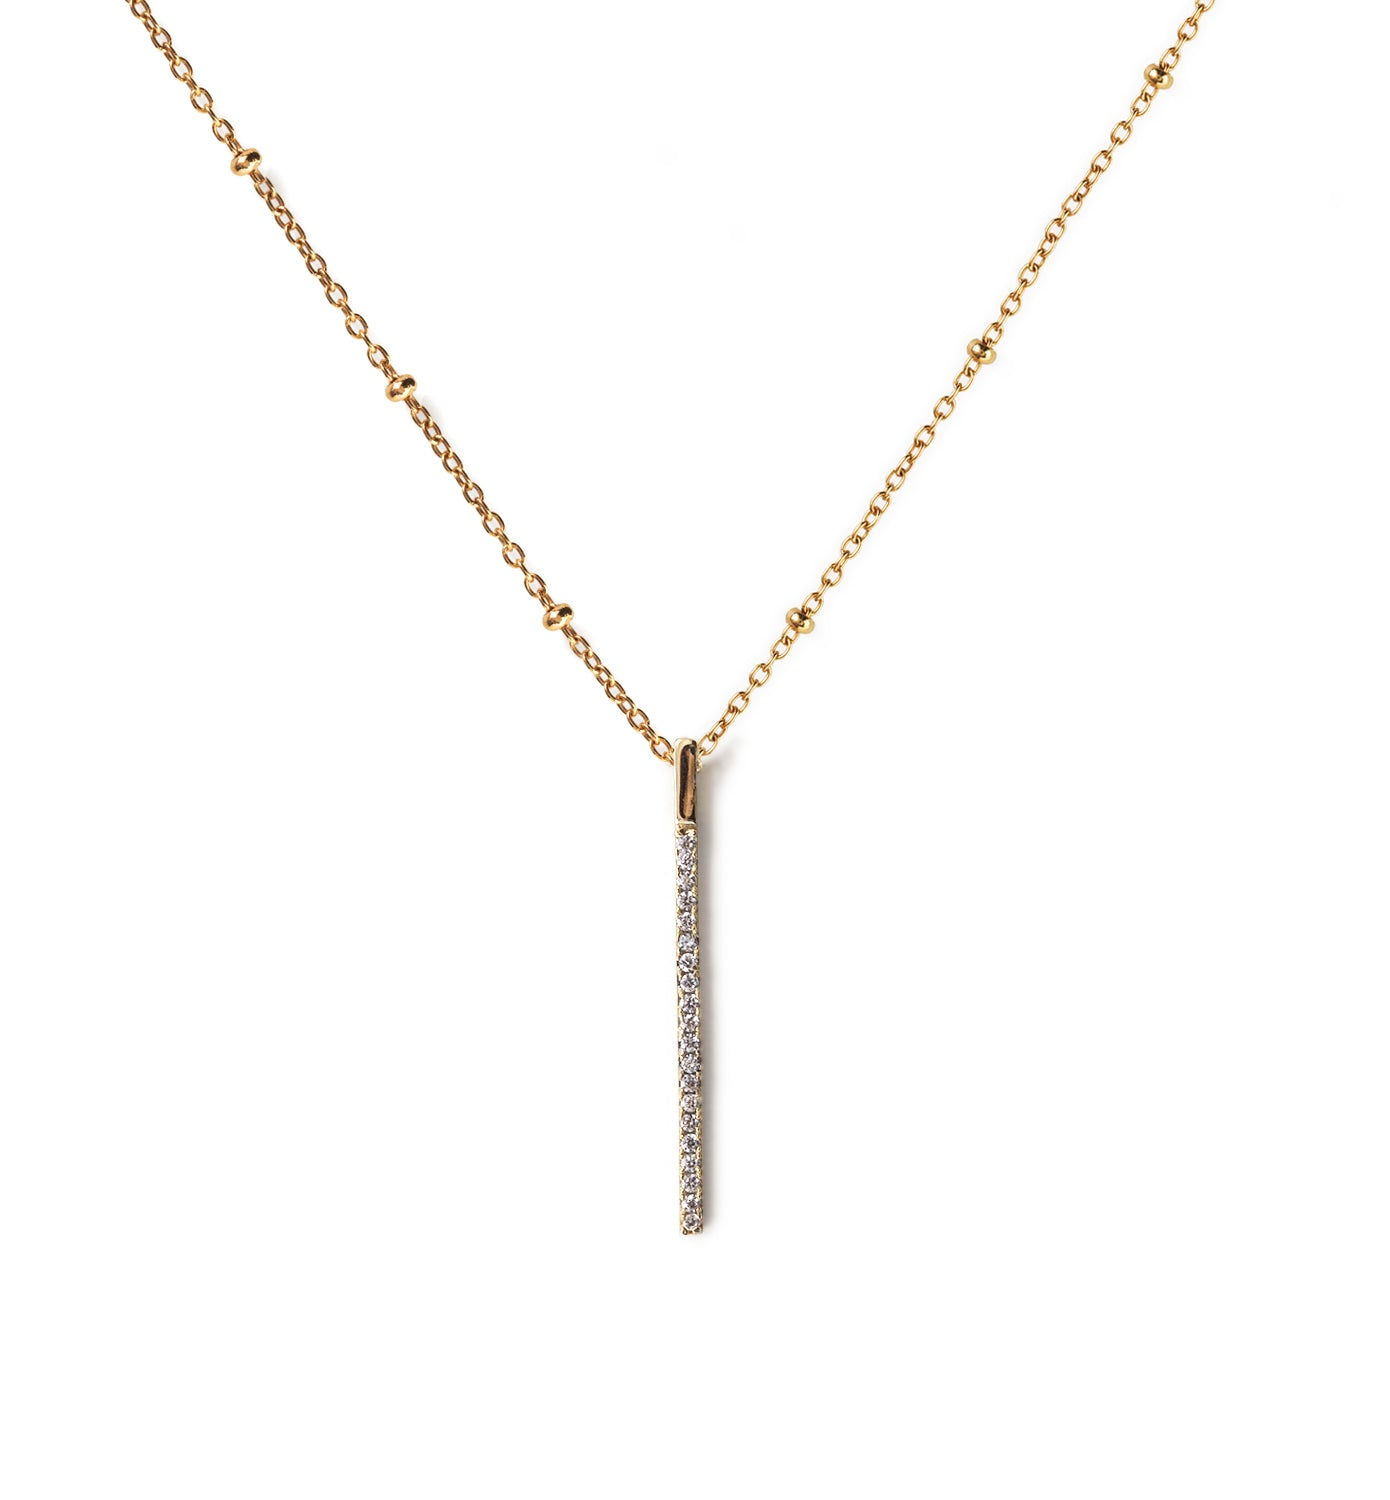 Gold Bar Beaded Chain Necklace, Necklaces - AMY O. Jewelry